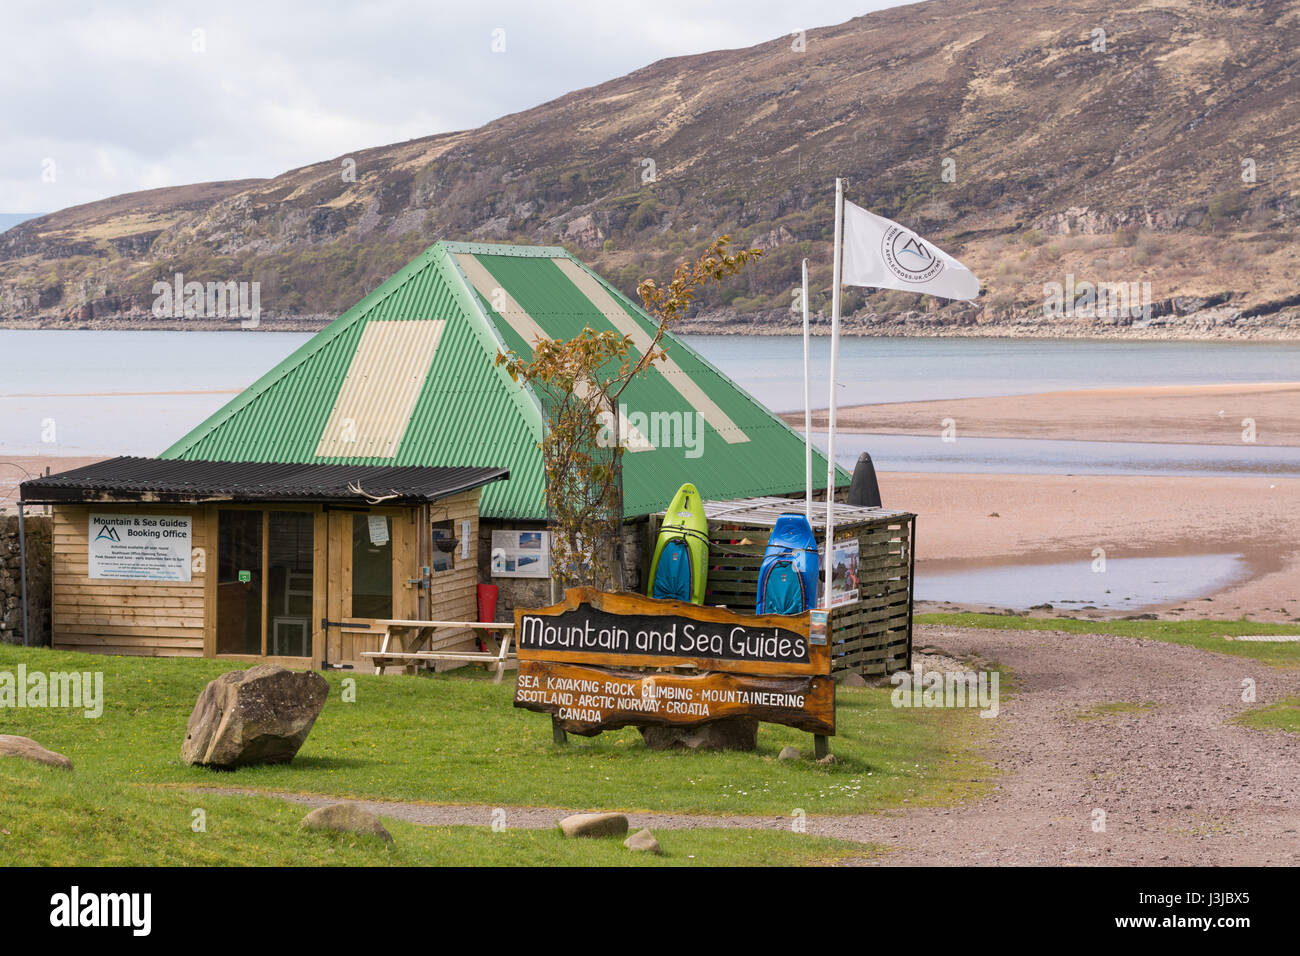 Mountain and Sea Guides adventure activity centre - Applecross, Wester Ross, Scotland,UK - Stock Image